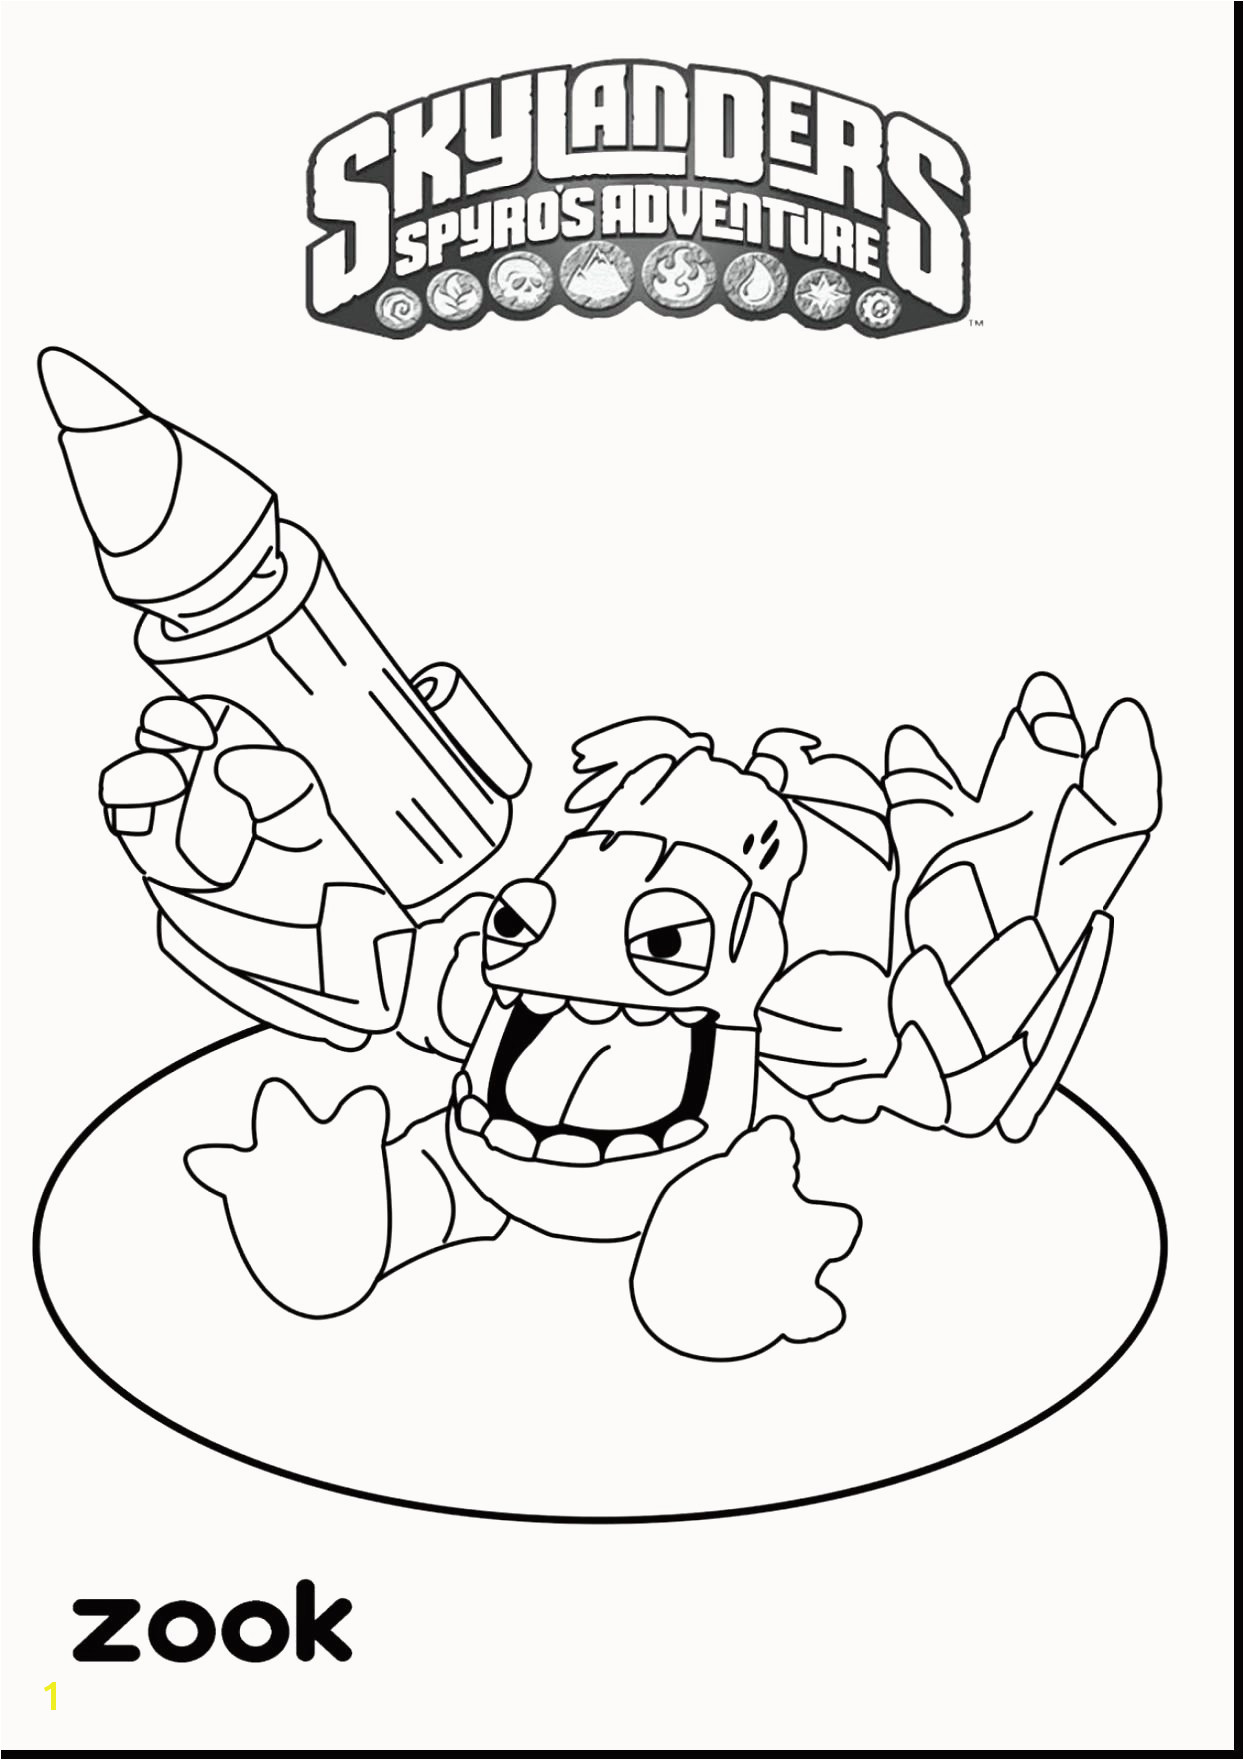 Iran Coloring Pages Best Flag Coloring Page Fresh Coloring Printables 16 Elegant Iran Coloring